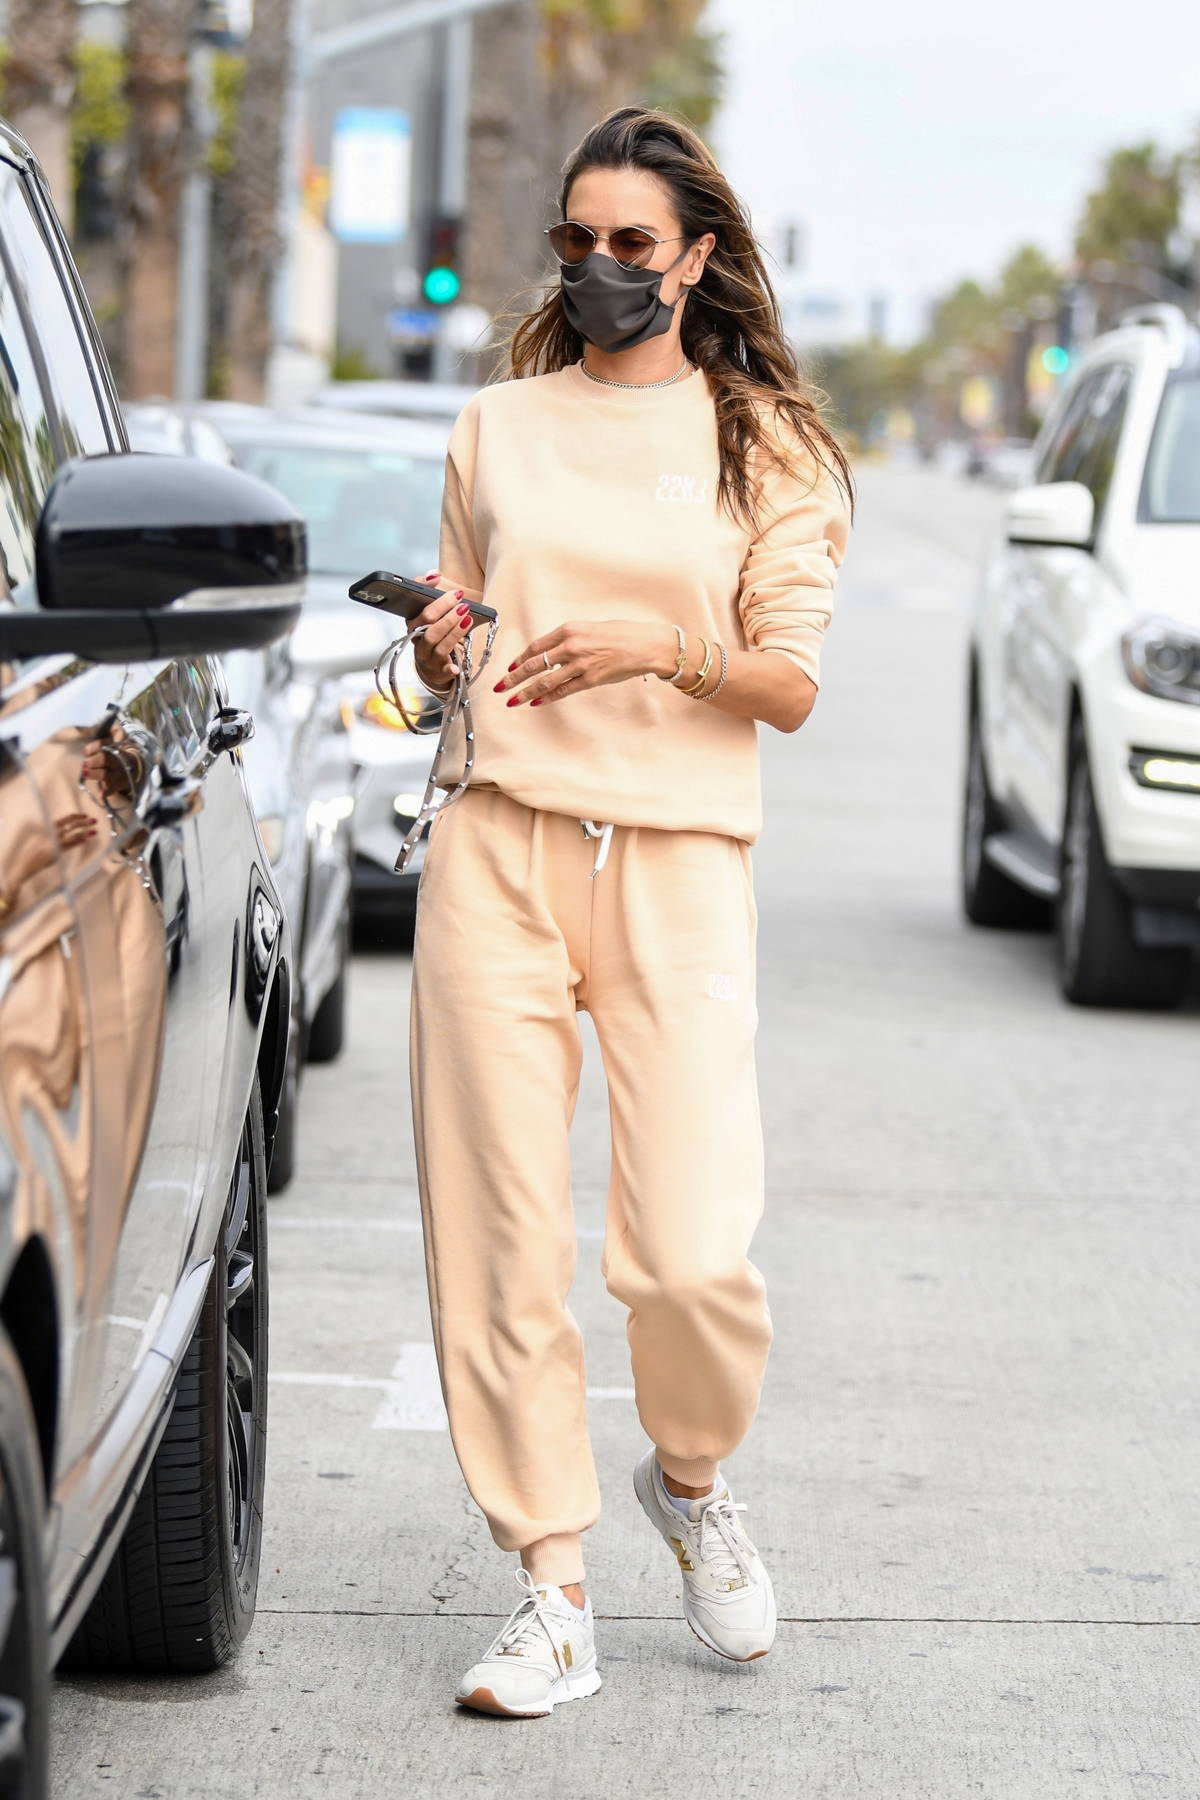 Alessandra Ambrosio looks casual yet chic in a peach sweatsuit as she steps out for lunch in Brentwood, California